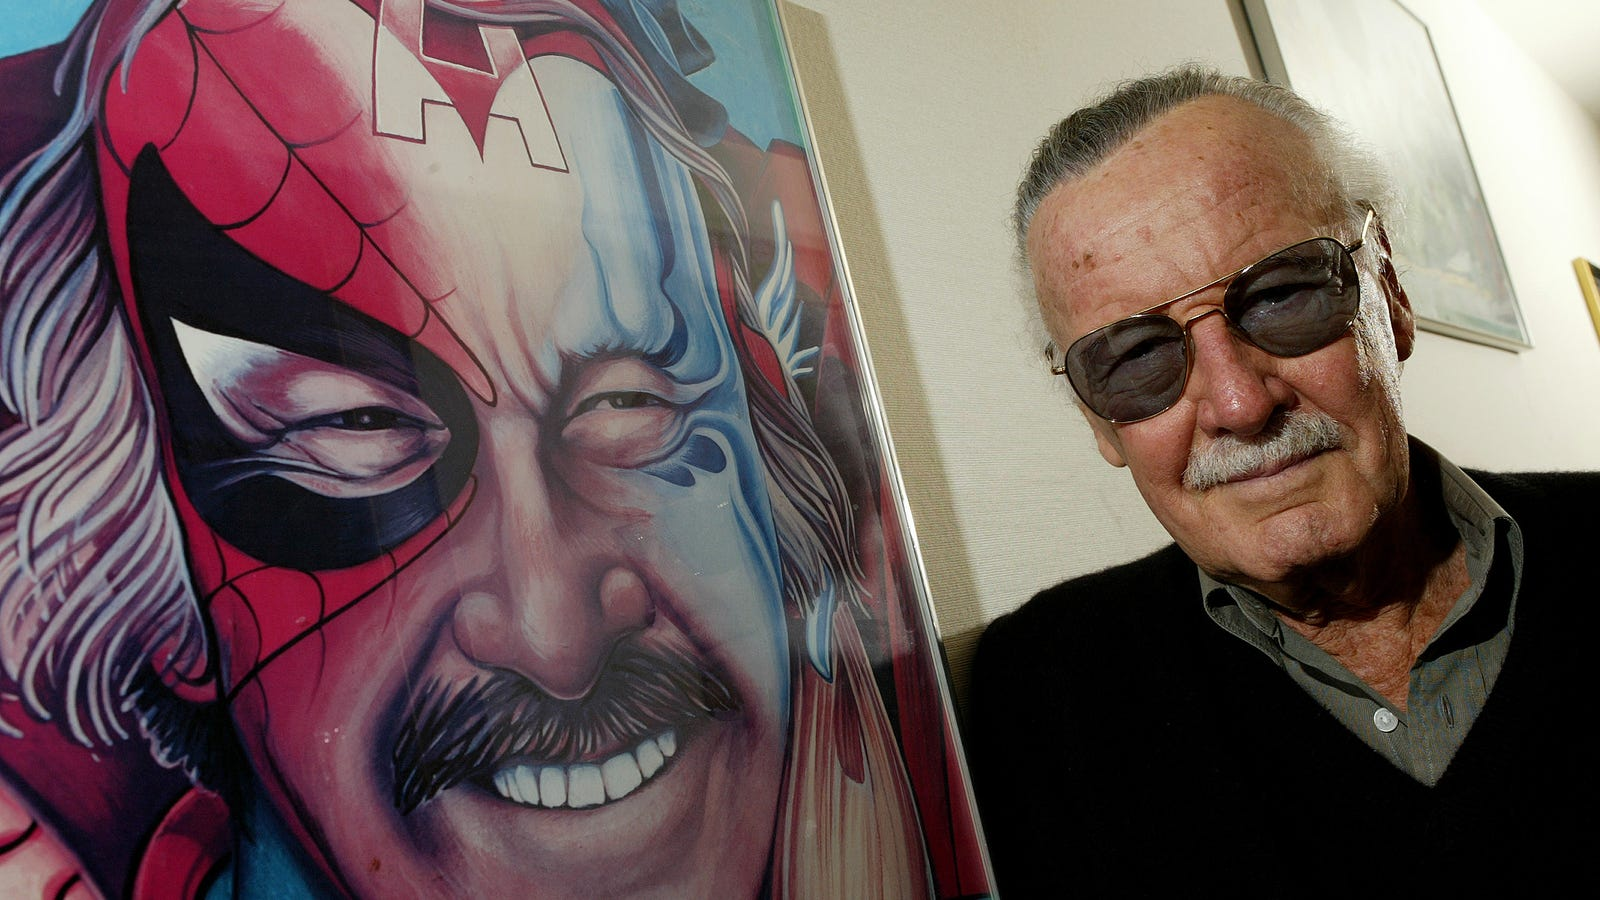 Stan Lee's Daughter Claims No One From Marvel or Disney Reached Out After His Death